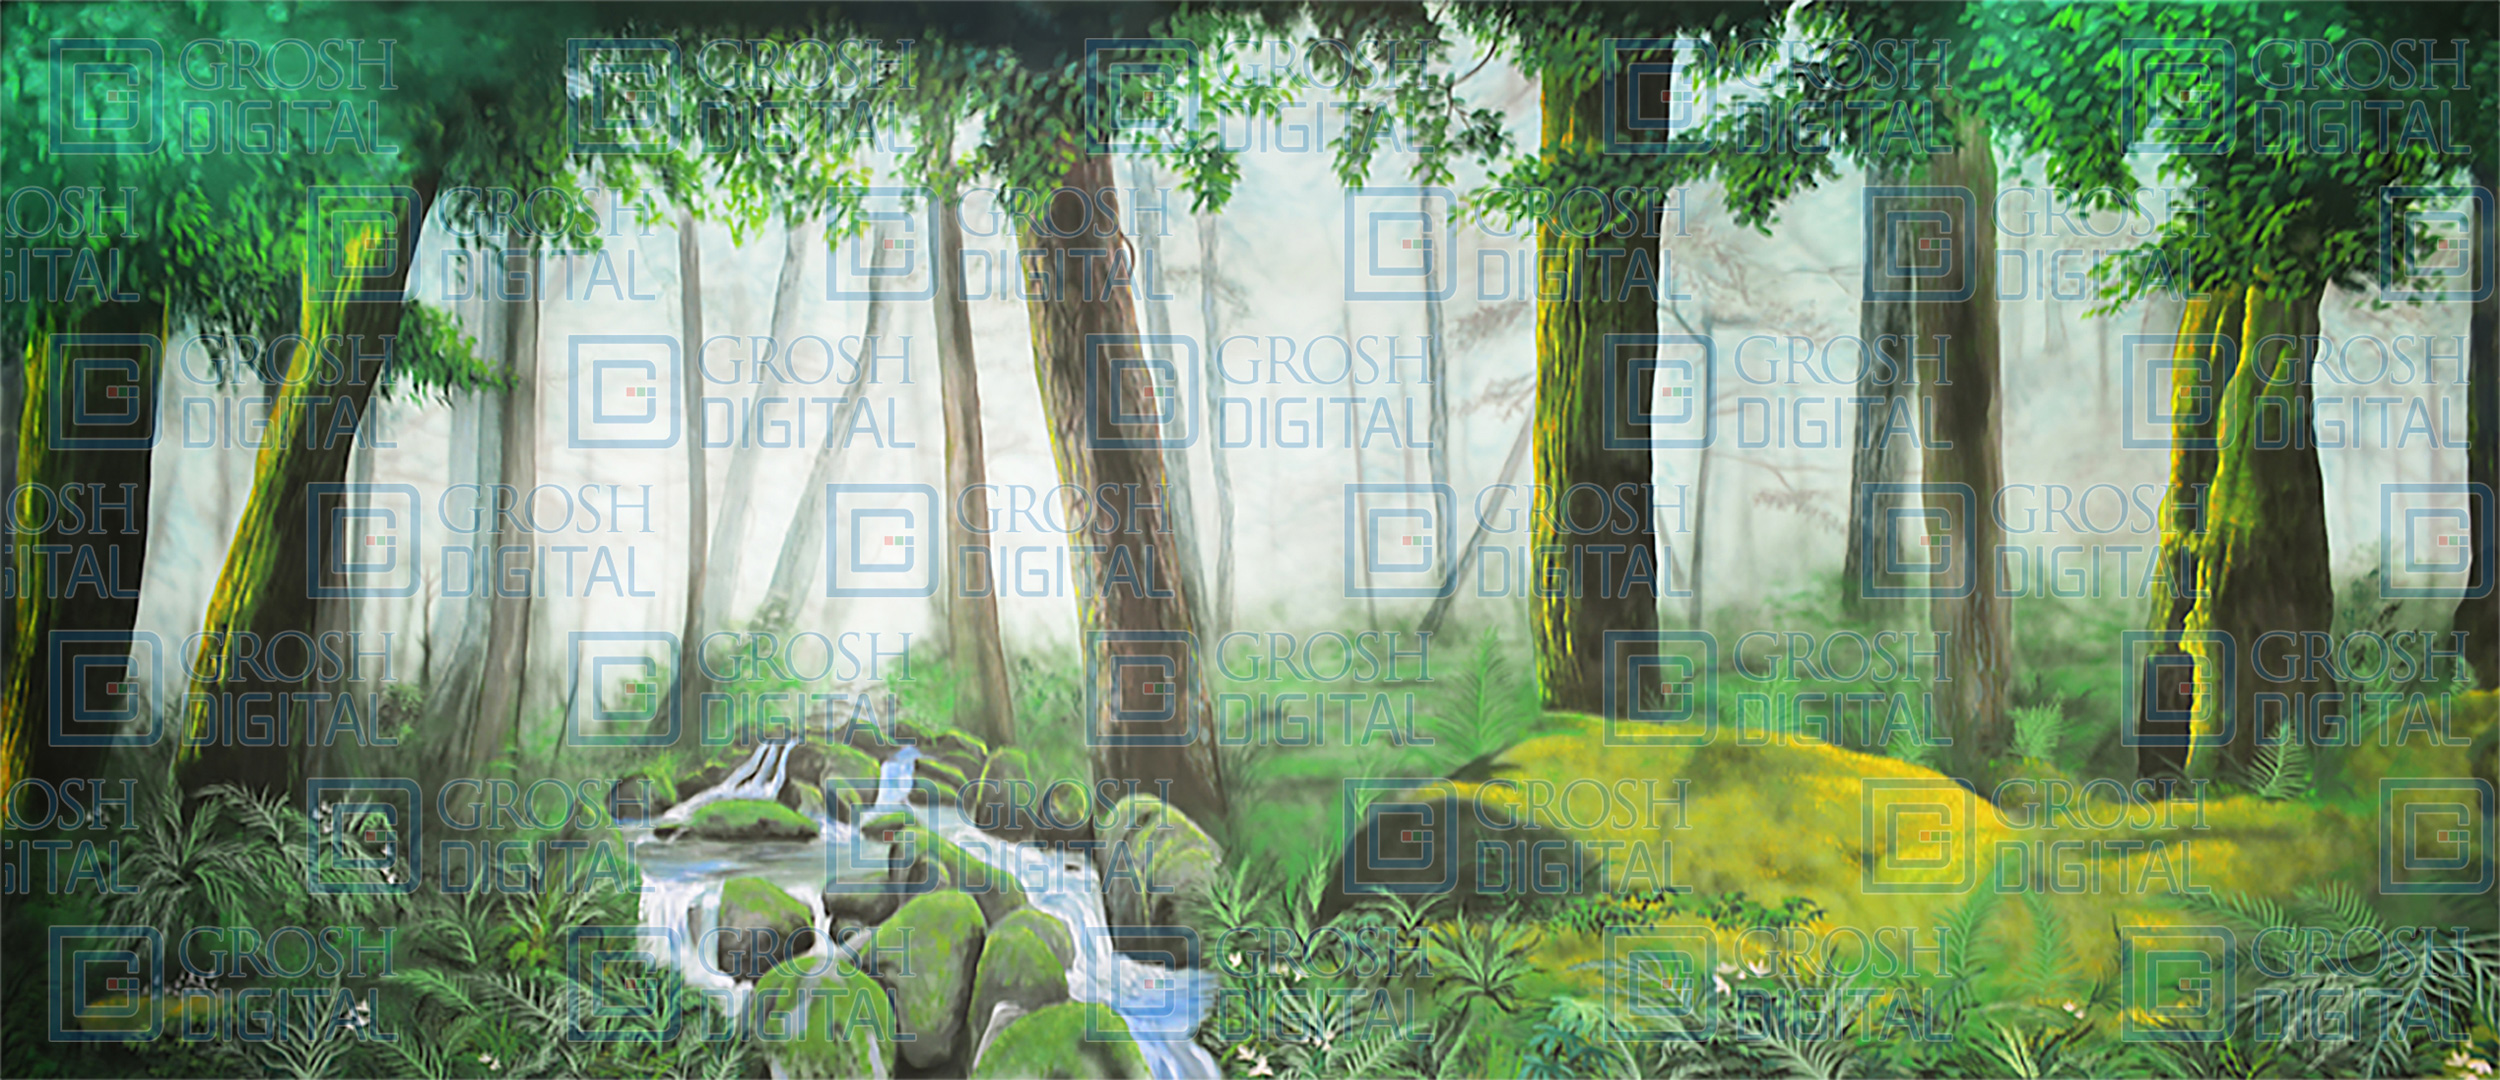 Mossy Forest 1 Projected Backdrop for Addams Family, Alice in Wonderland, Beauty and the Beast, Big Fish, Brigadoon, Cinderella, Forest, Into the Woods, Lion King, Madagascar, Peter Pan, Seven Brides for Seven Brothers, Shrek, Sleeping Beauty, Wizard of Oz